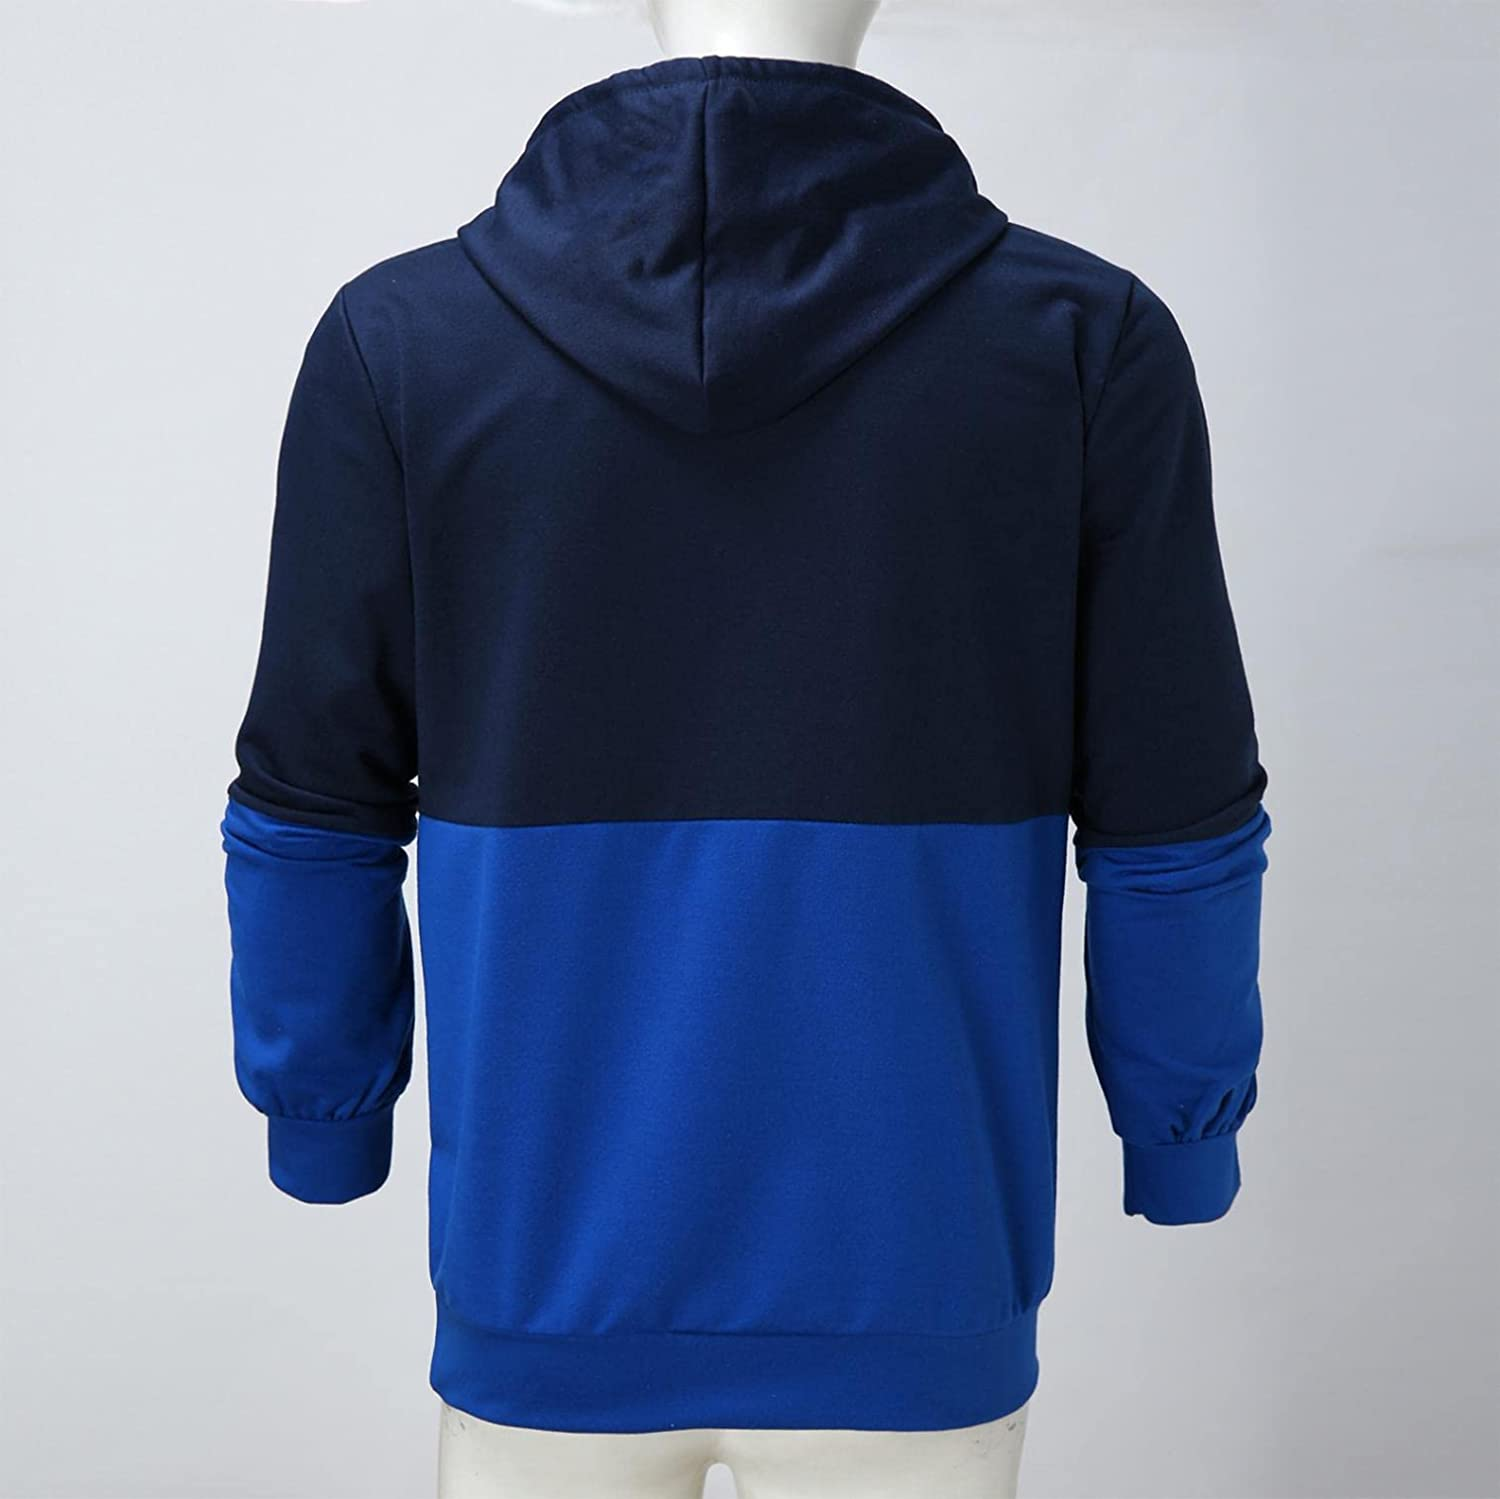 Qsctys Men's Pullover Hoodies Blend Fleece Long Sleeve Hooded Patchwork Contrast Color Fashion Sweatshirts with Kanga Pocket